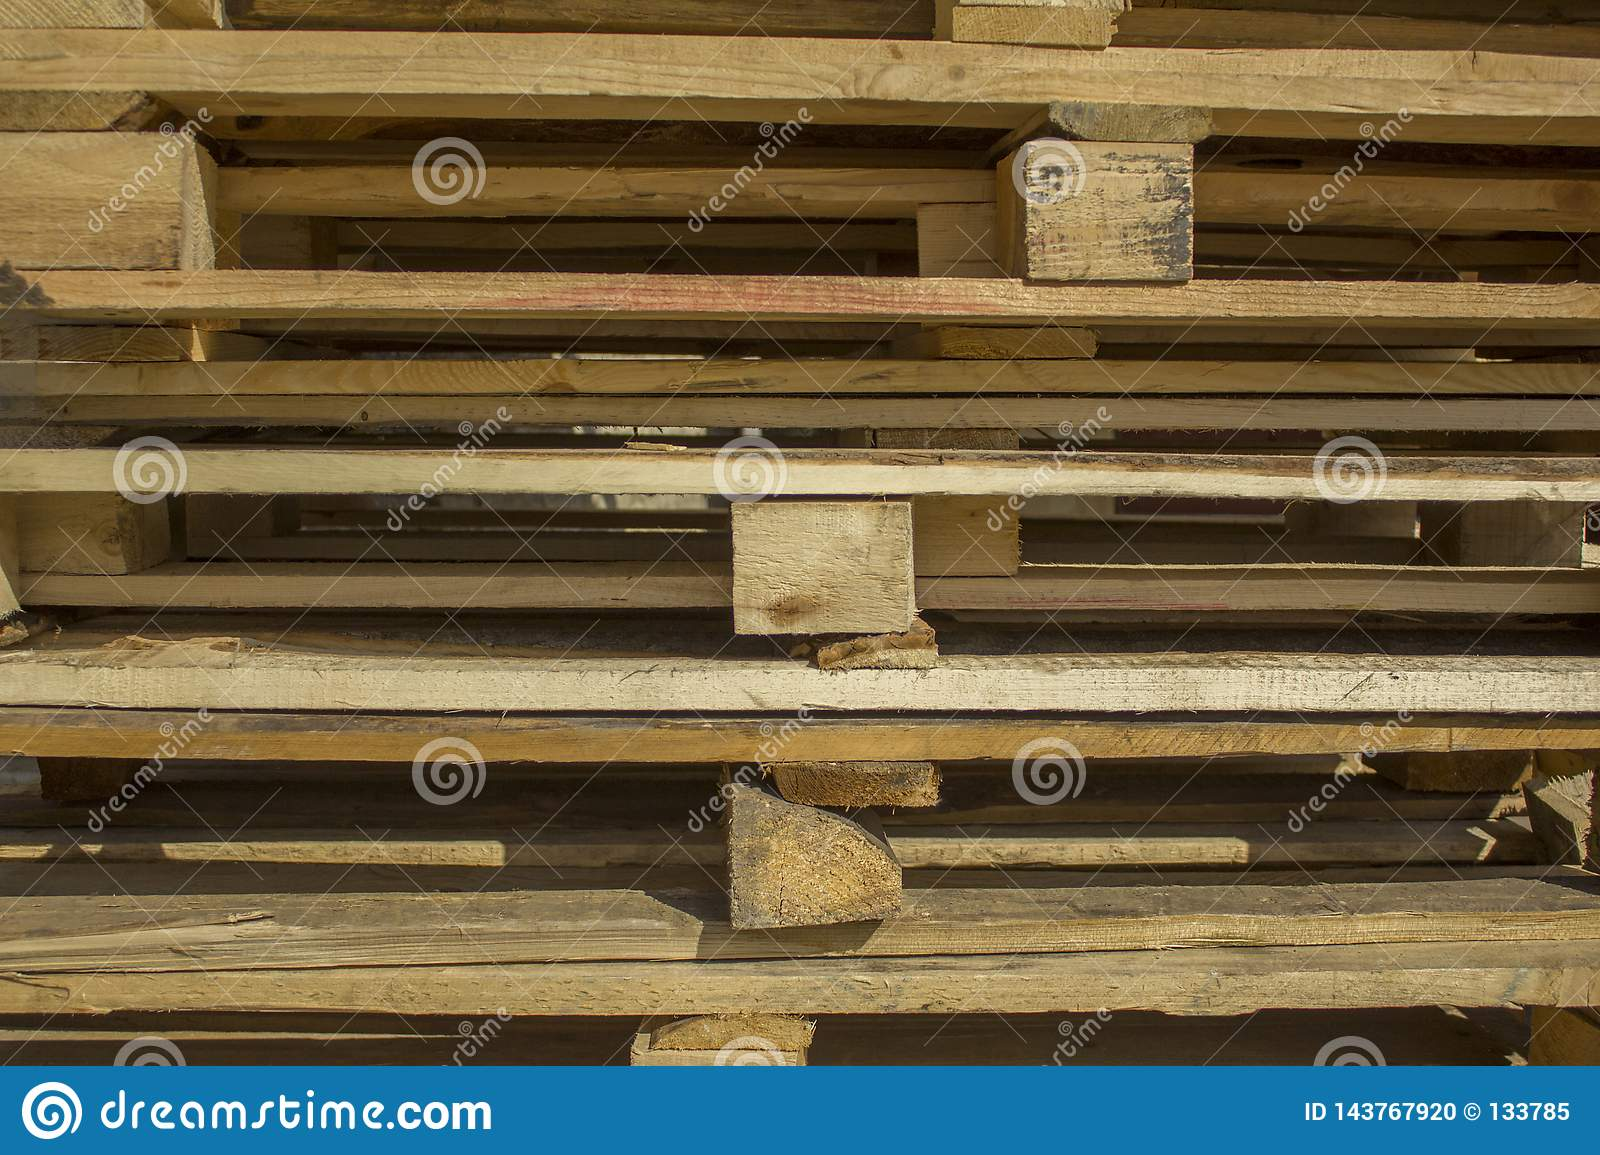 Gray and yellow wooden square bars and planks lie in rows, horizontal lines. rough surface texture